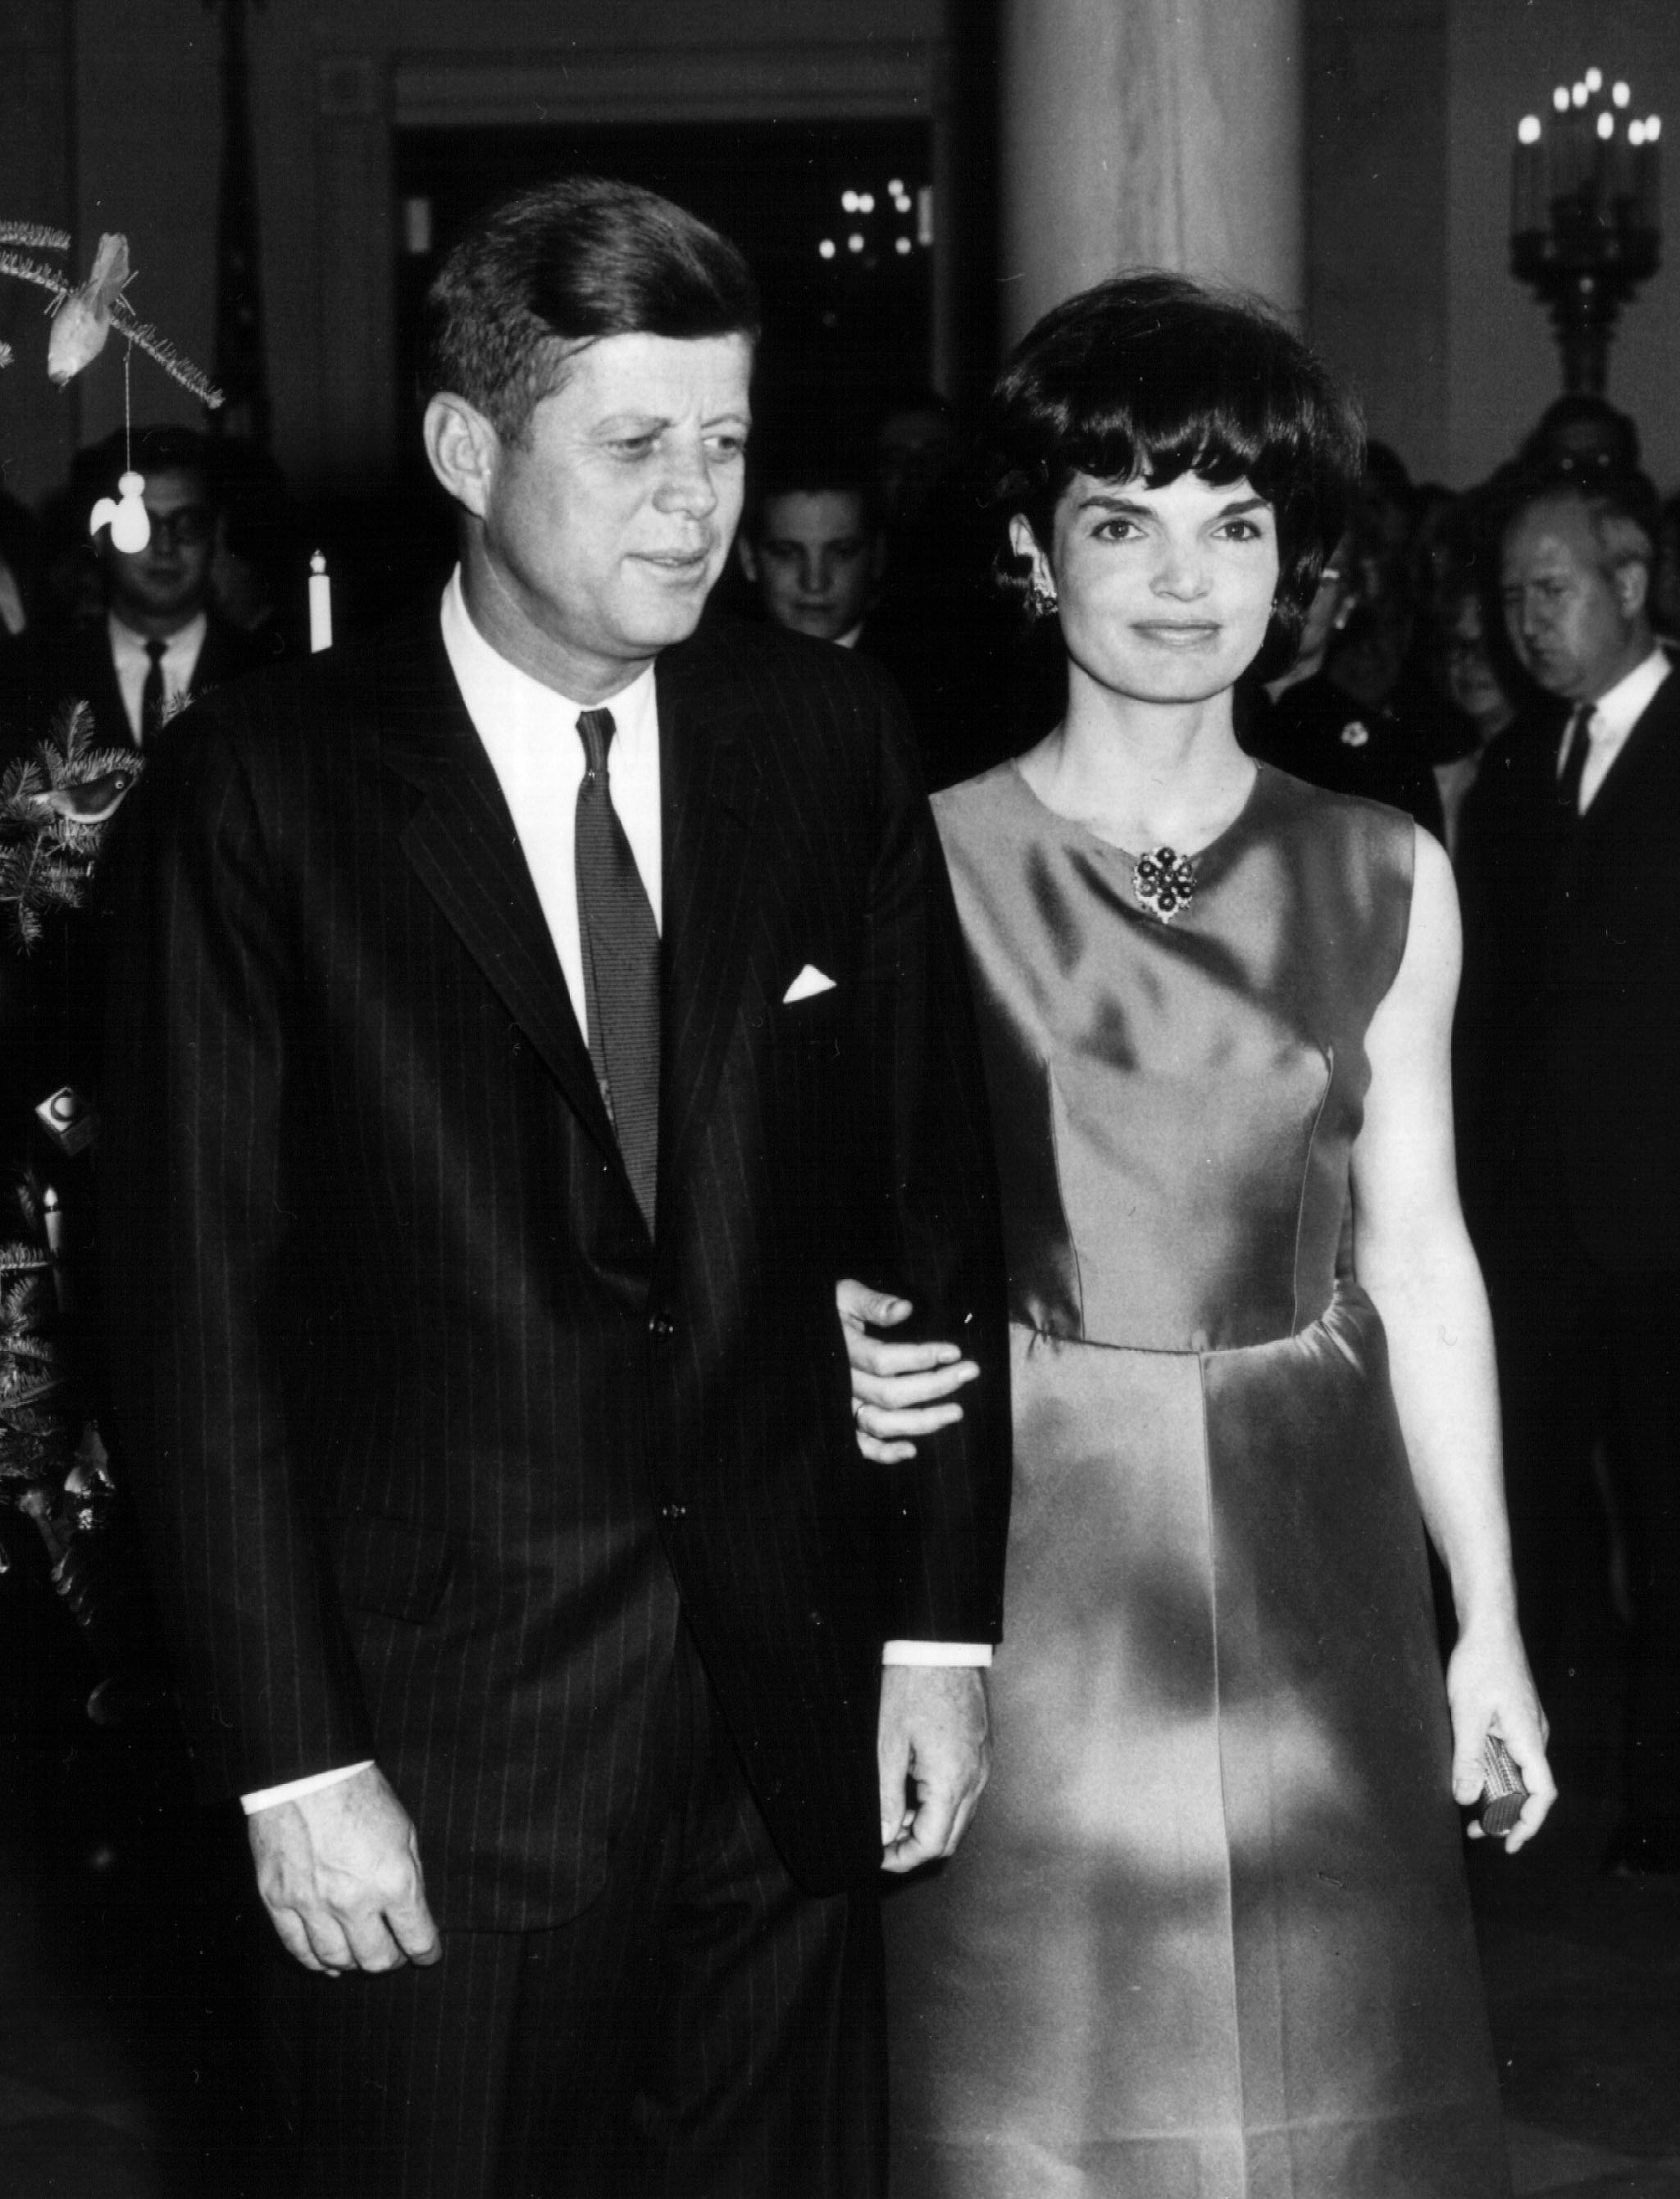 President John F. Kennedy and First Lady Jacqueline Kennedy attend a White House Ceremony in December, 1962, in Washington, DC. | Source: Getty Images.